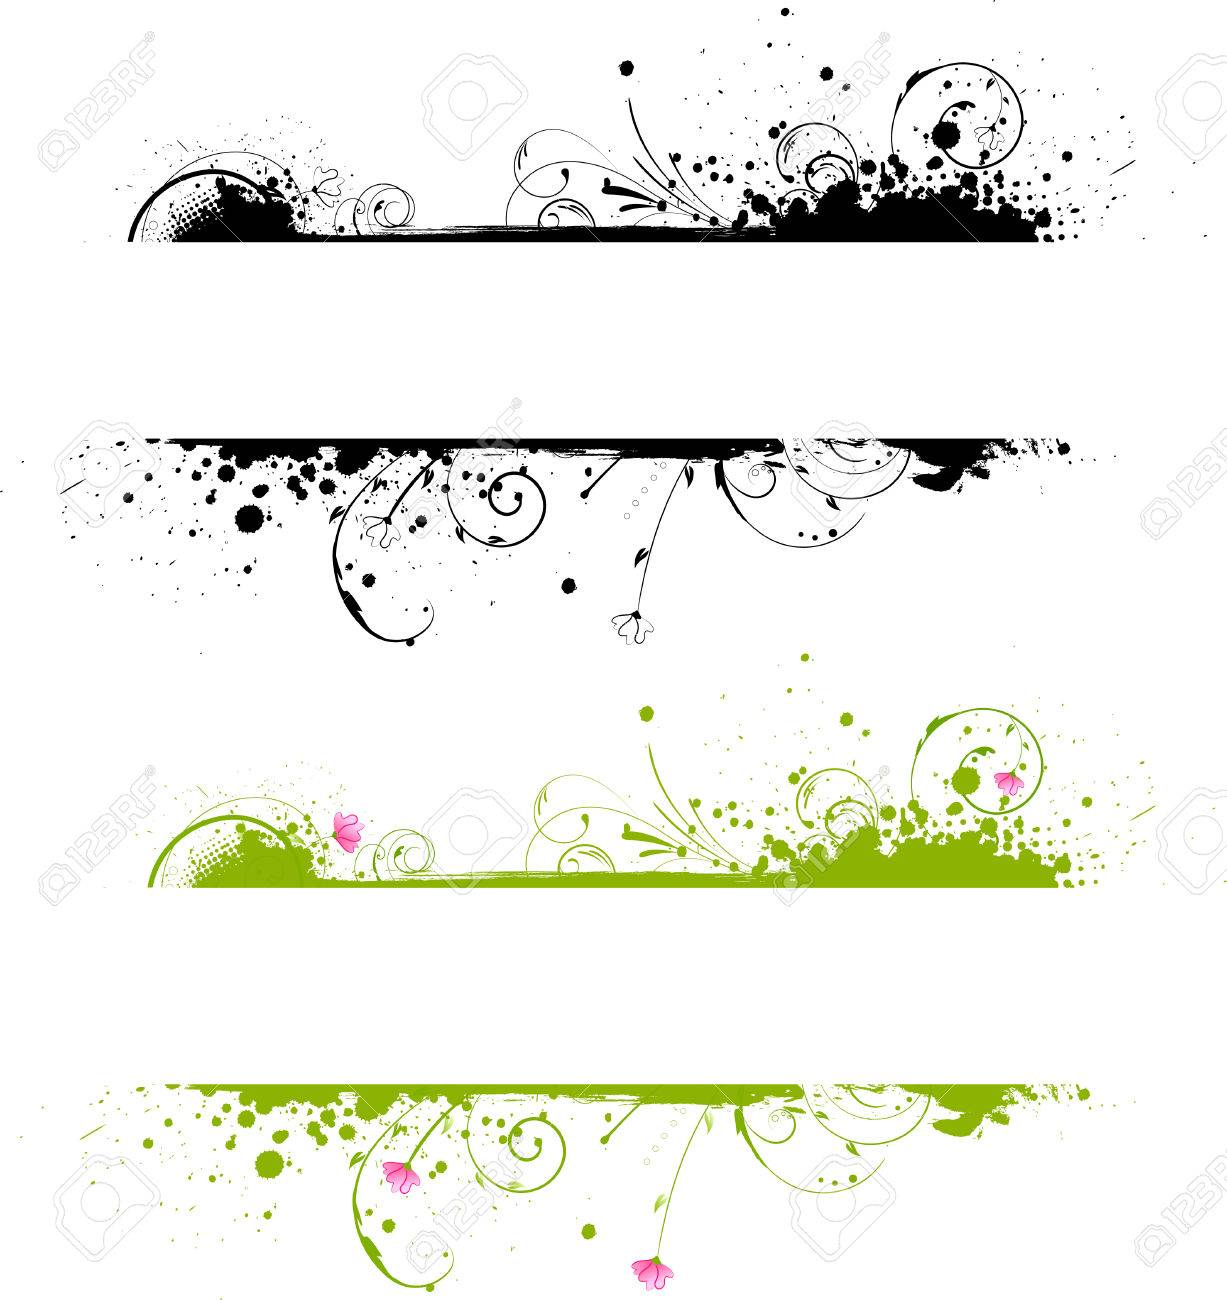 Grunge banner frame in black color and colorful variant Stock Vector - 8977824